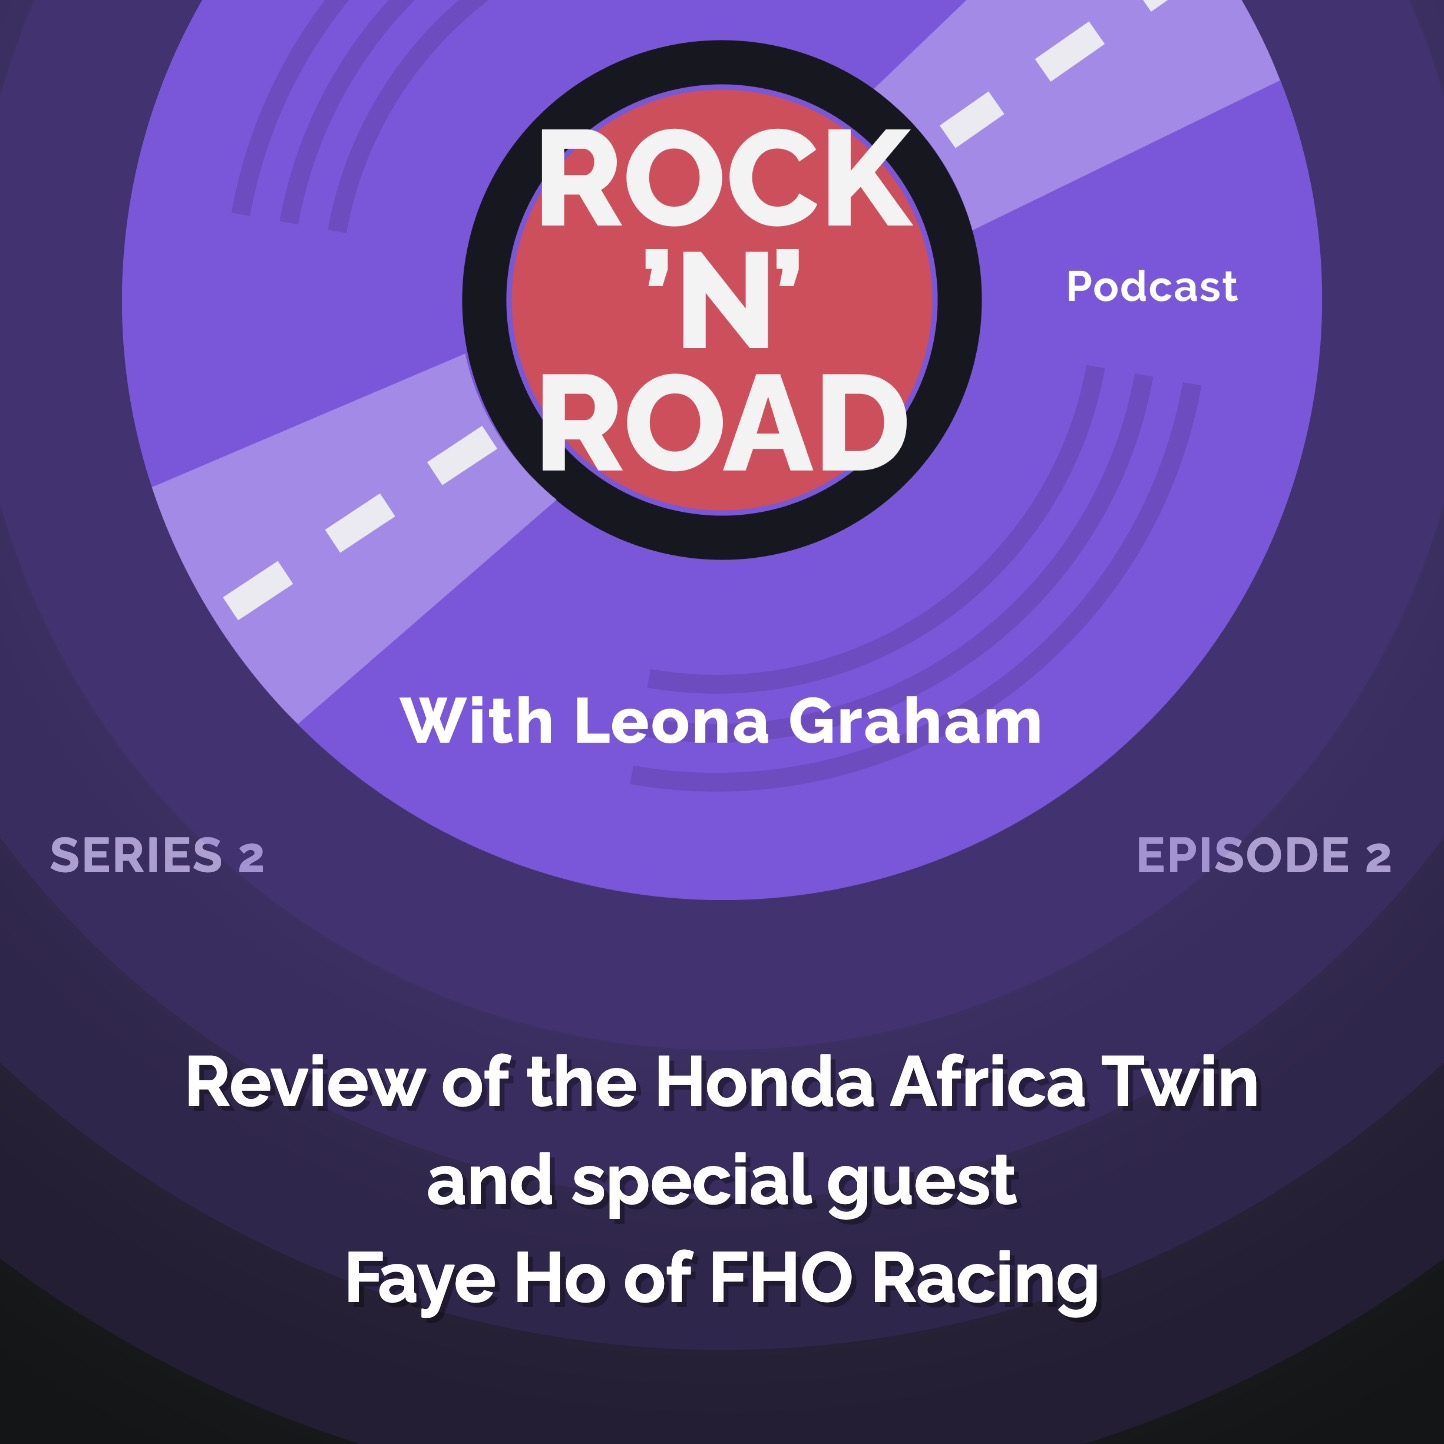 Series 2 Episode 2: Review of the Honda Africa Twin and special guest Faye Ho of FHO Racing